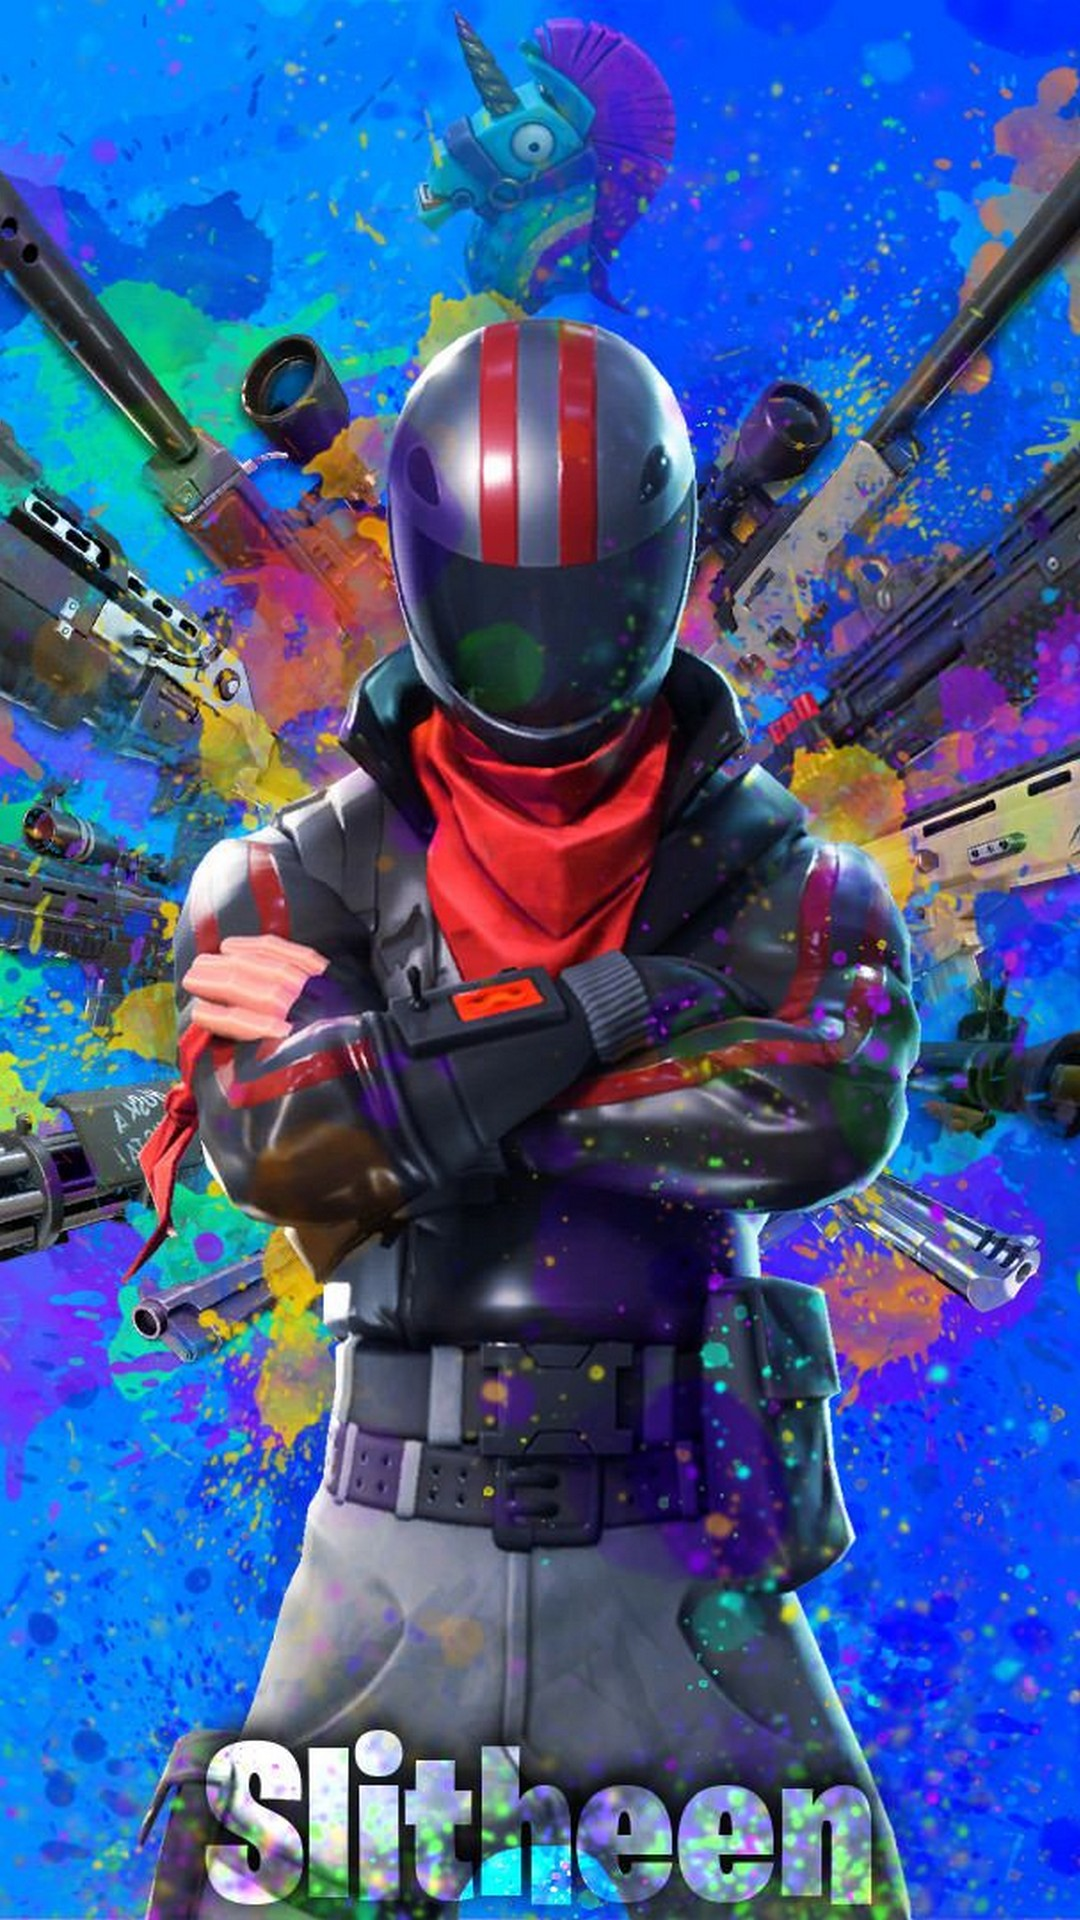 Fortnite Wallpaper For Phones With High Resolution Huawei P Smart 2019 Fortnite 2877374 Hd Wallpaper Backgrounds Download